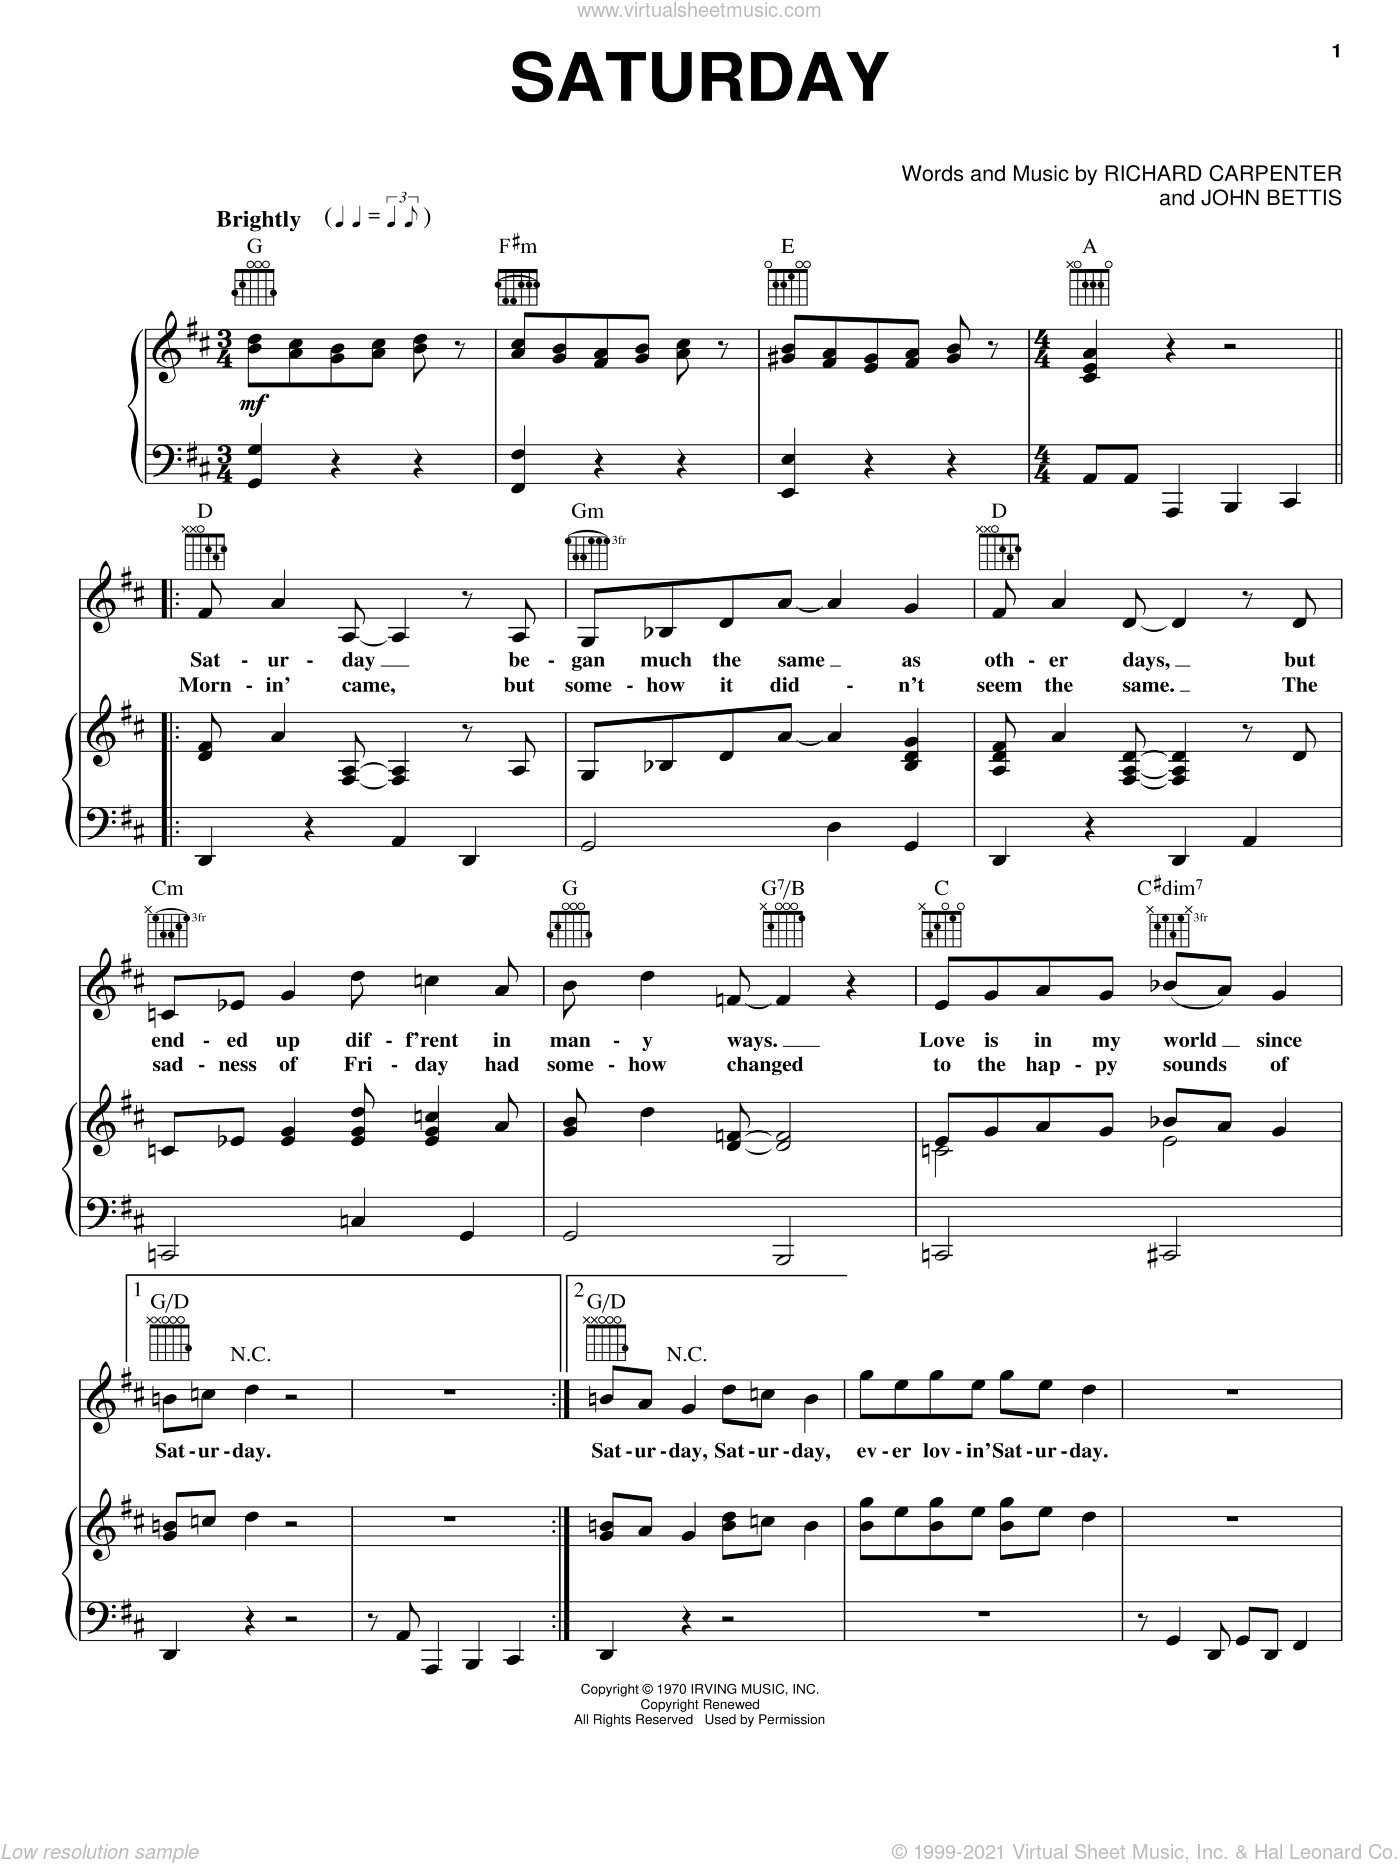 Saturday sheet music for voice, piano or guitar by Carpenters, John Bettis and Richard Carpenter, intermediate skill level